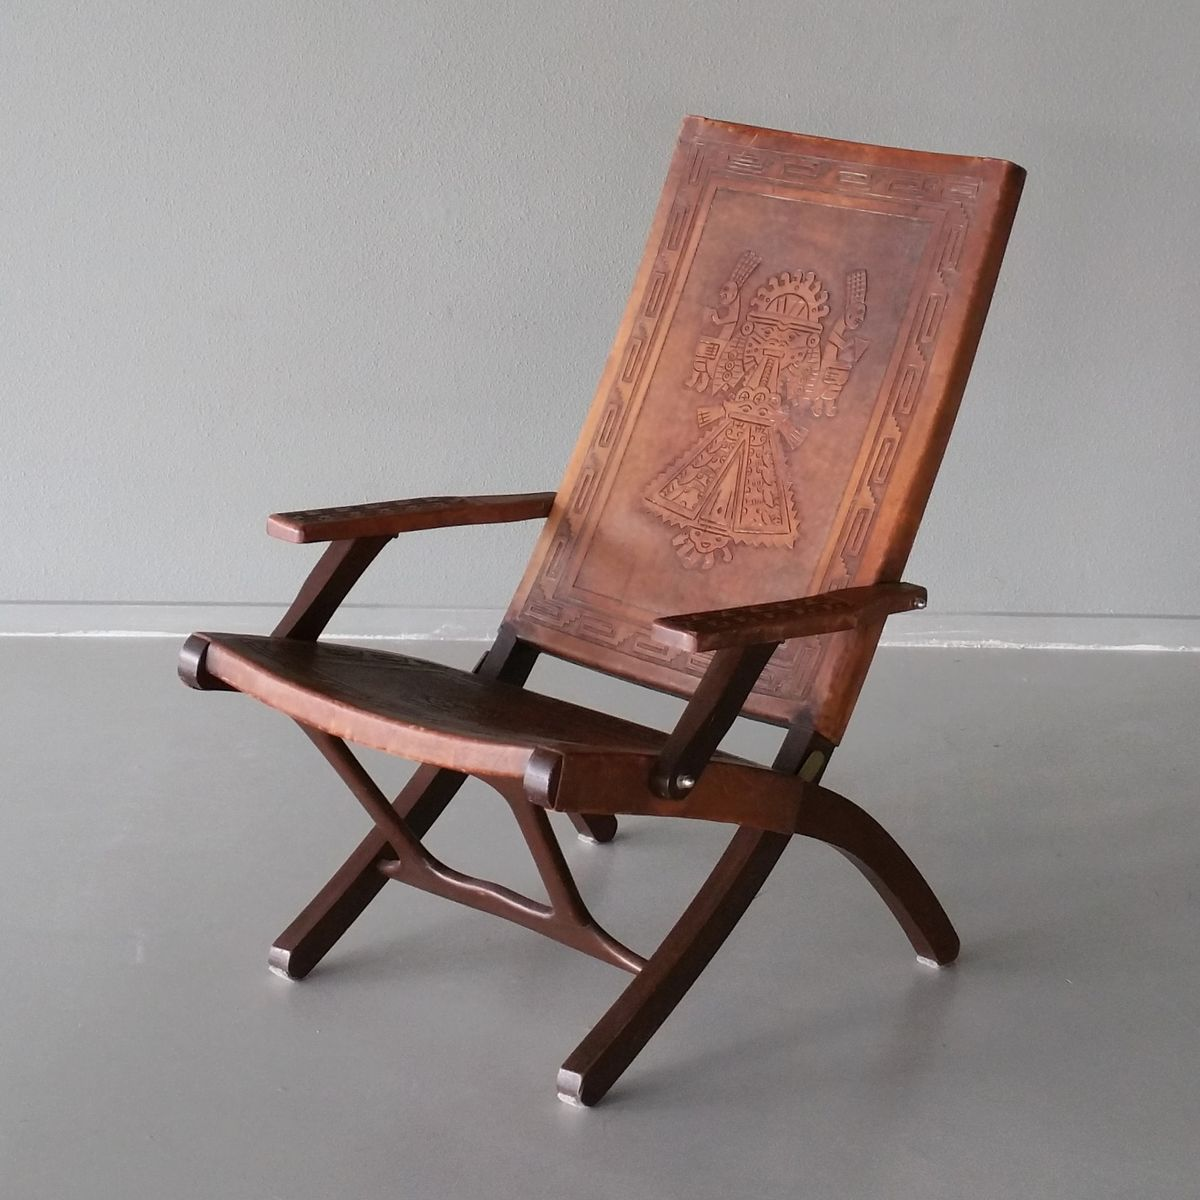 Leather U0026 Wood Folding Chair By Angel Pazmino For Muebles De Estilo, 1960s